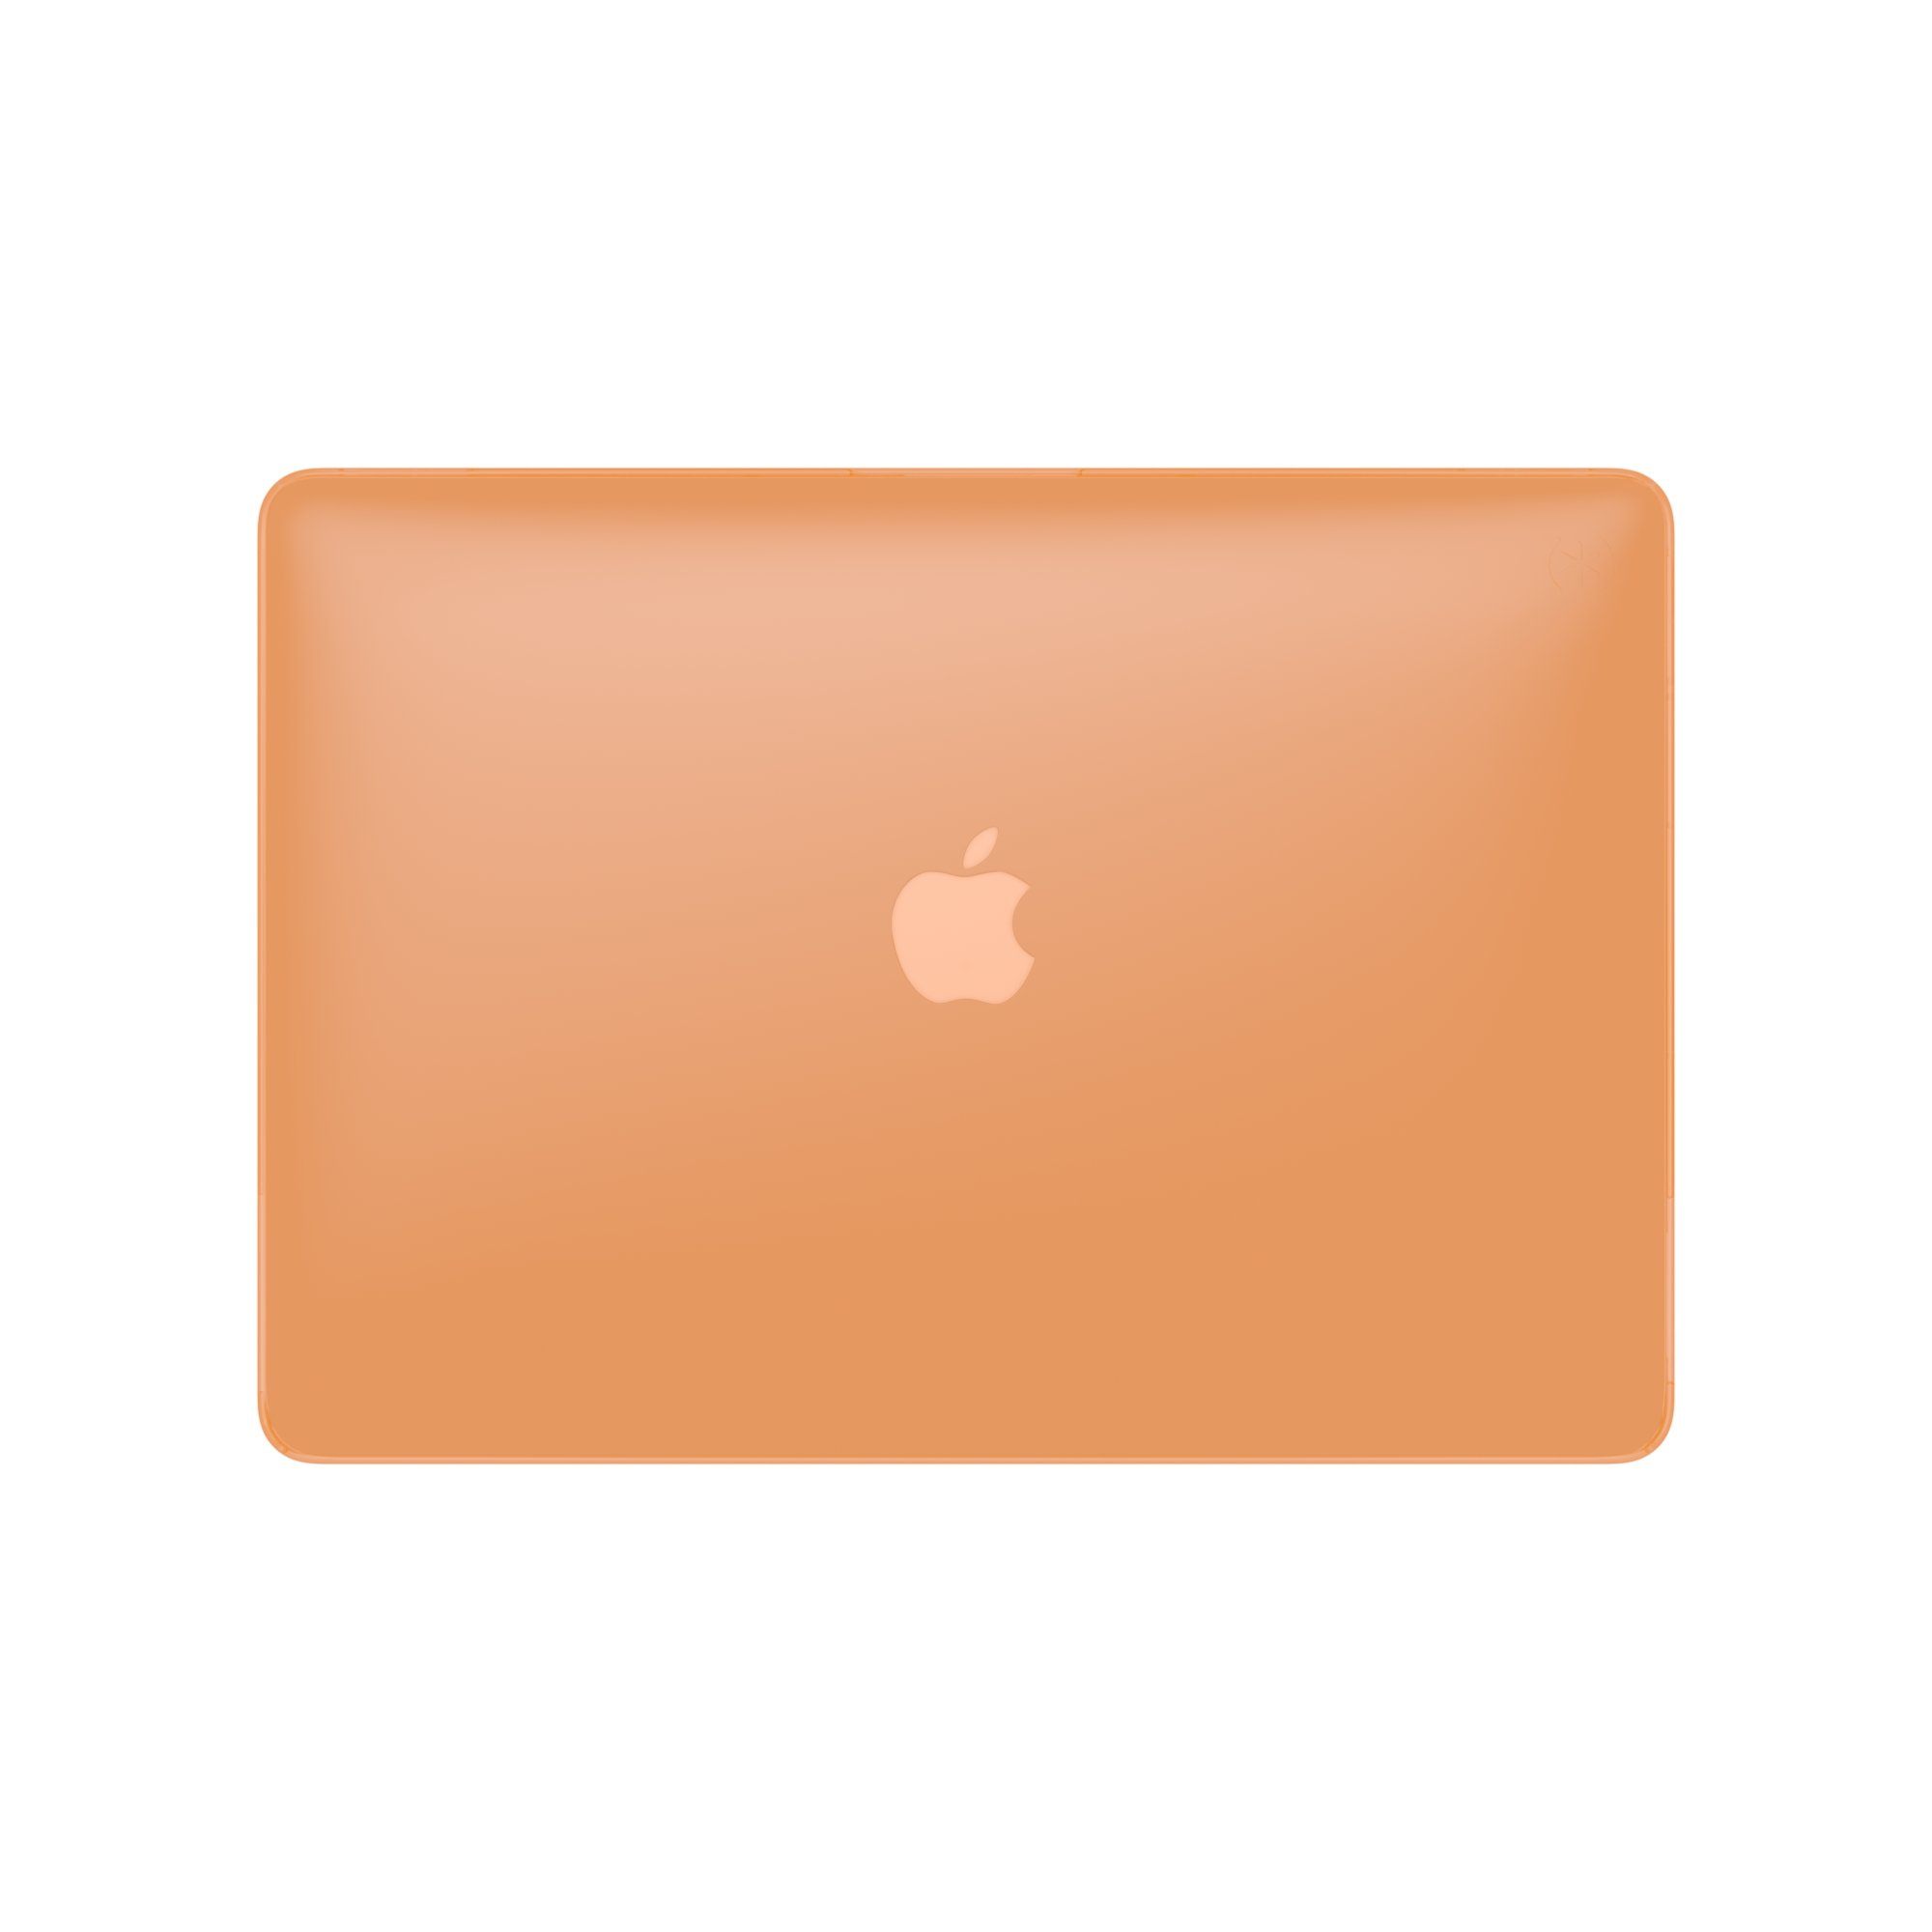 Speck Products 110608-7374 SmartShell Case, MacBook Pro 13'' (with and Without Touch Bar), Persimmon Orange by Speck (Image #4)